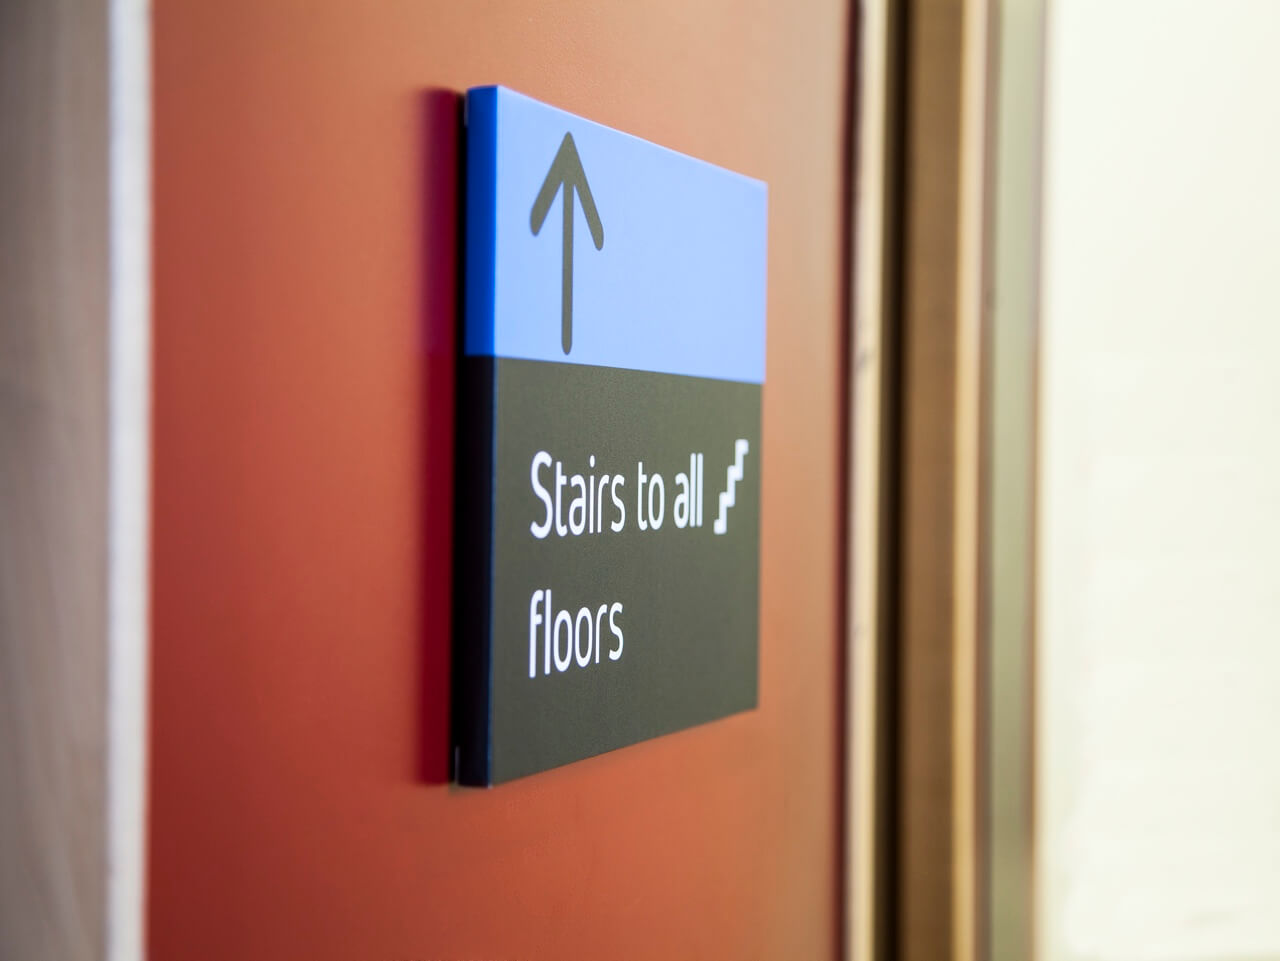 Directional stairs signage with pictogram